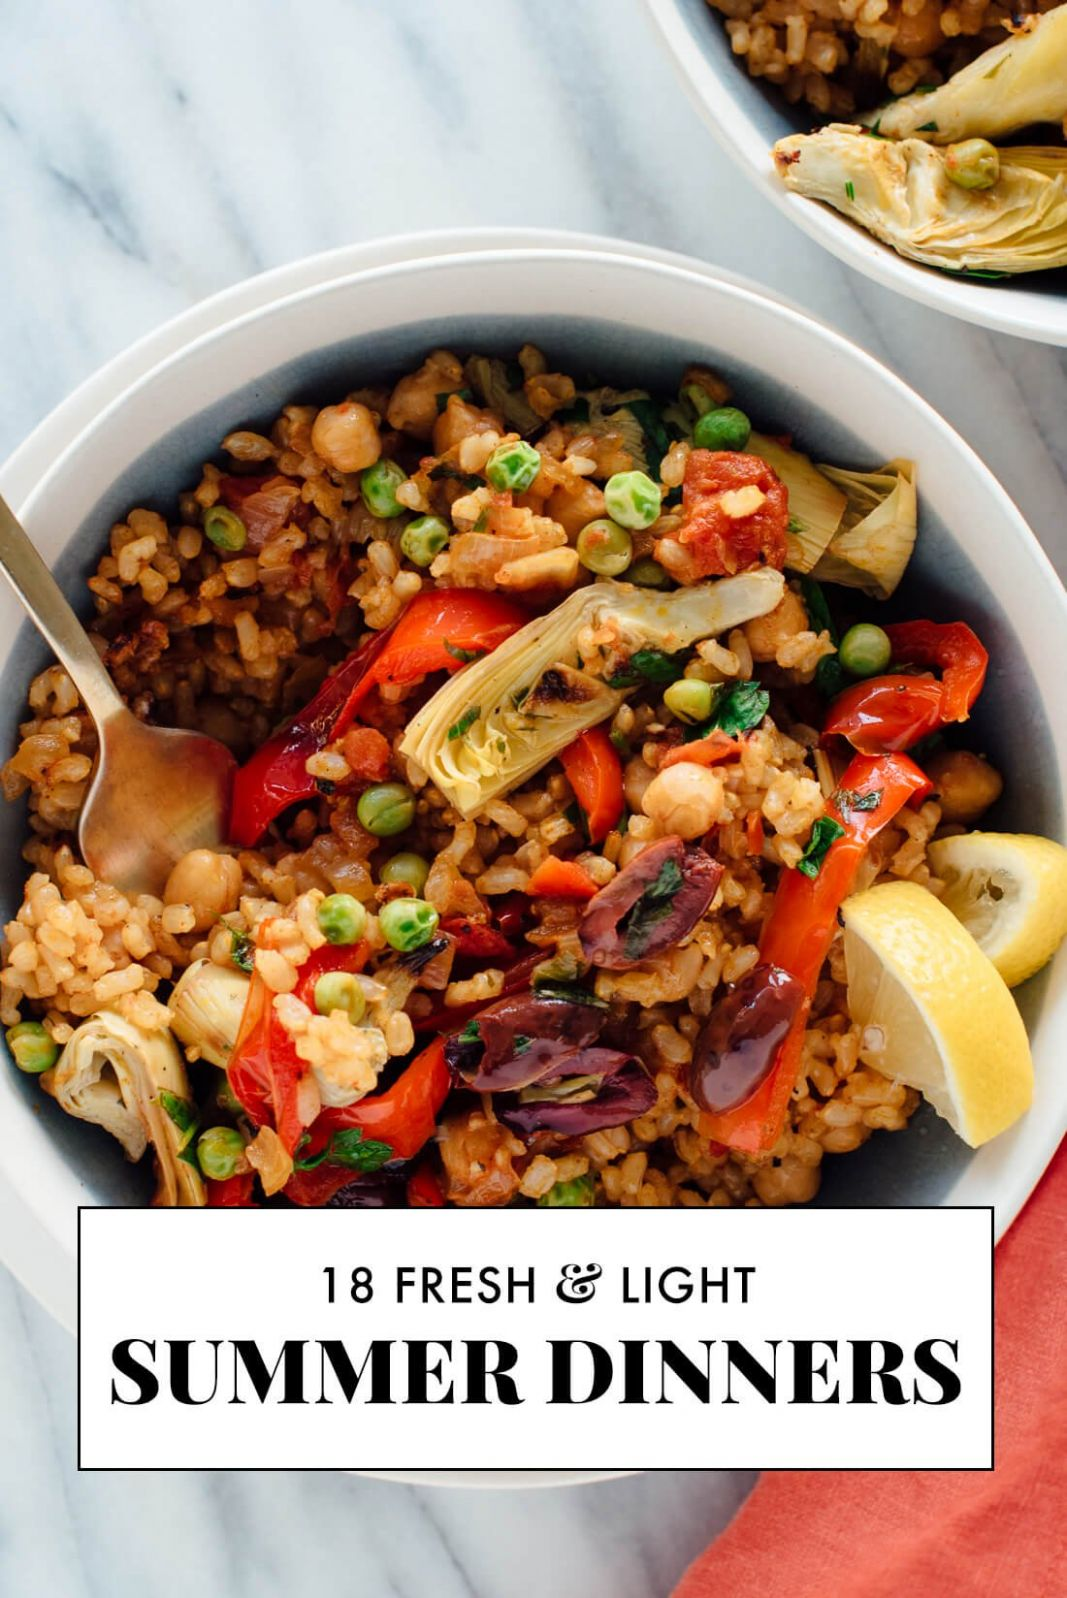 10 Light Summer Dinner Recipes - Cookie and Kate - Summer Recipes Healthy Dinner